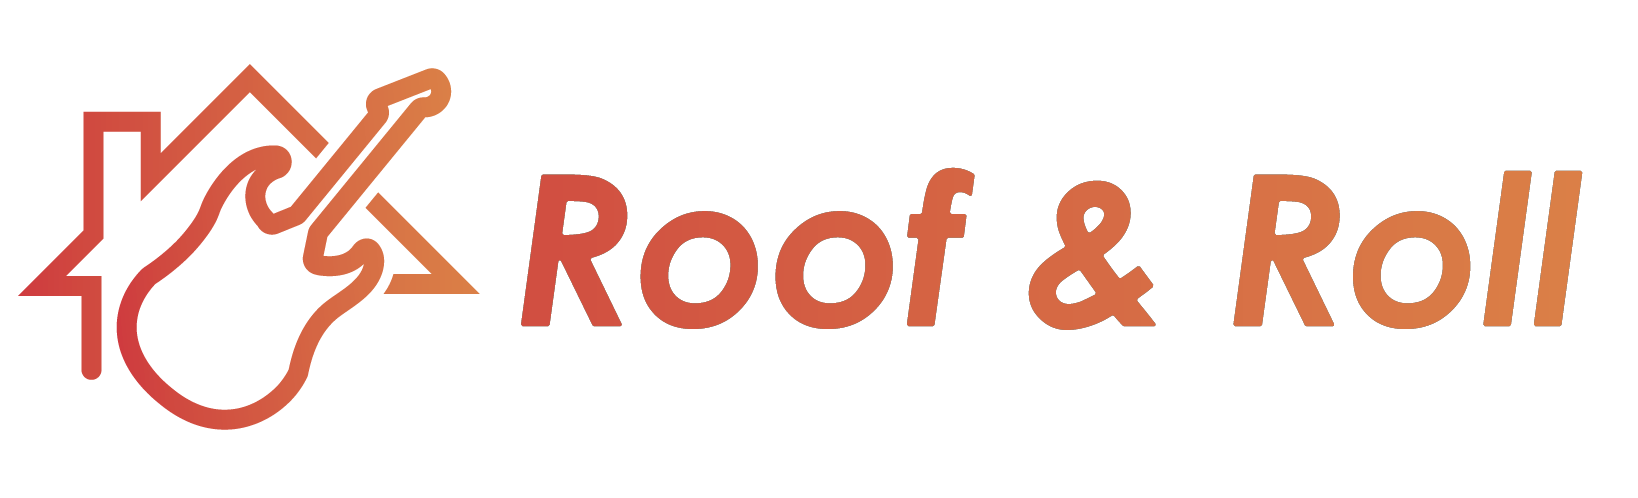 Roof and Roll